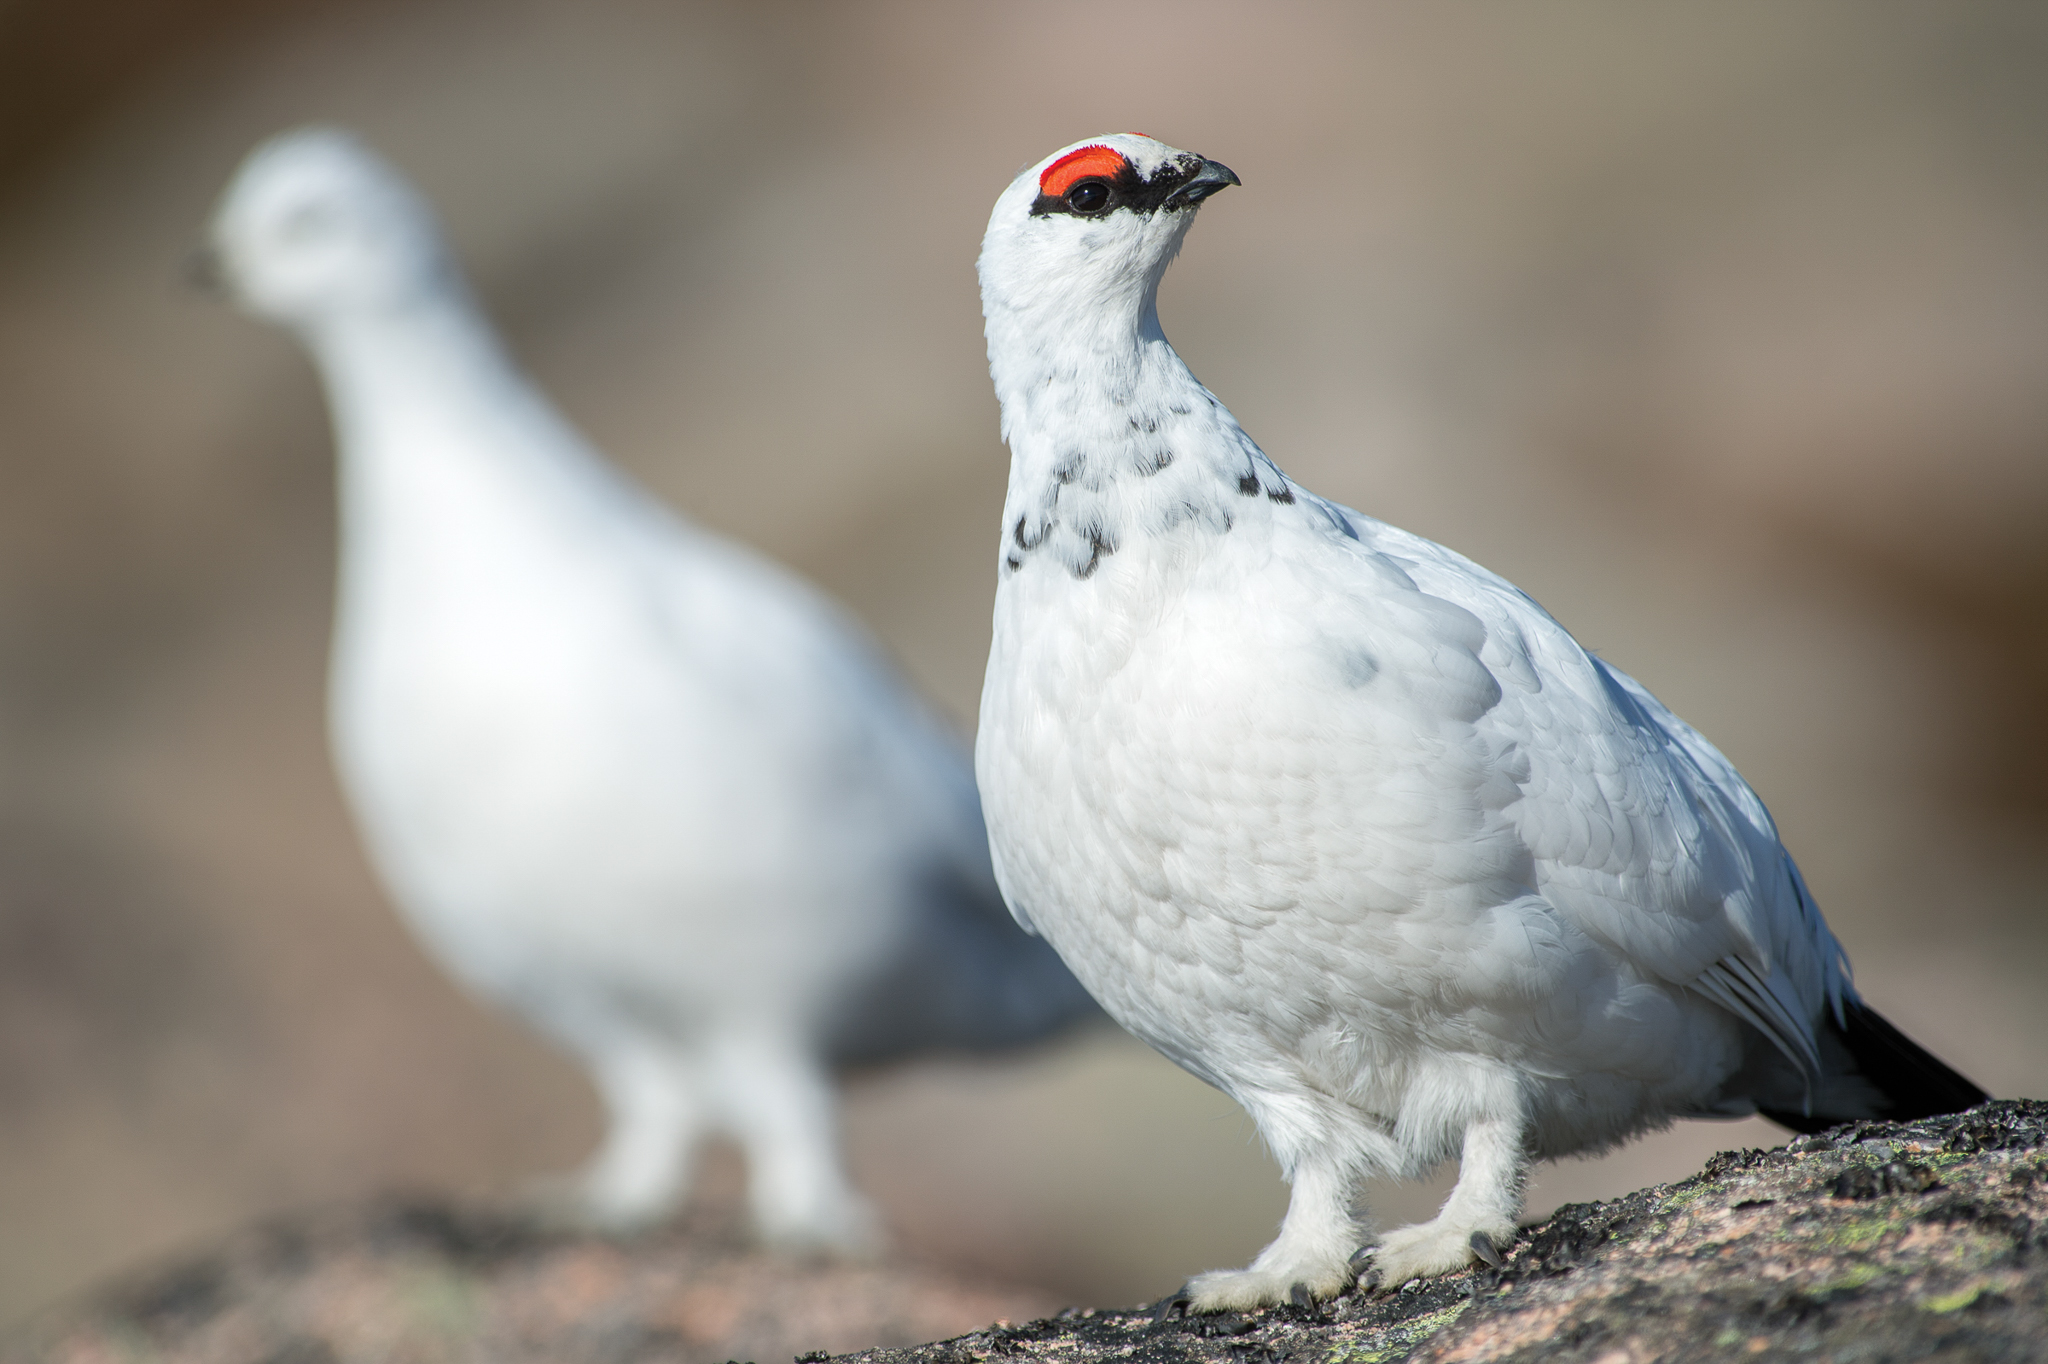 Displaying male ptarmigan with his hen in the background: Note the fabulous feathery feet. Nikon D4, 300mm + 2 x converter at 600mm, ISO 250, 1/1250 sec at f/8. © Andrew Marshall